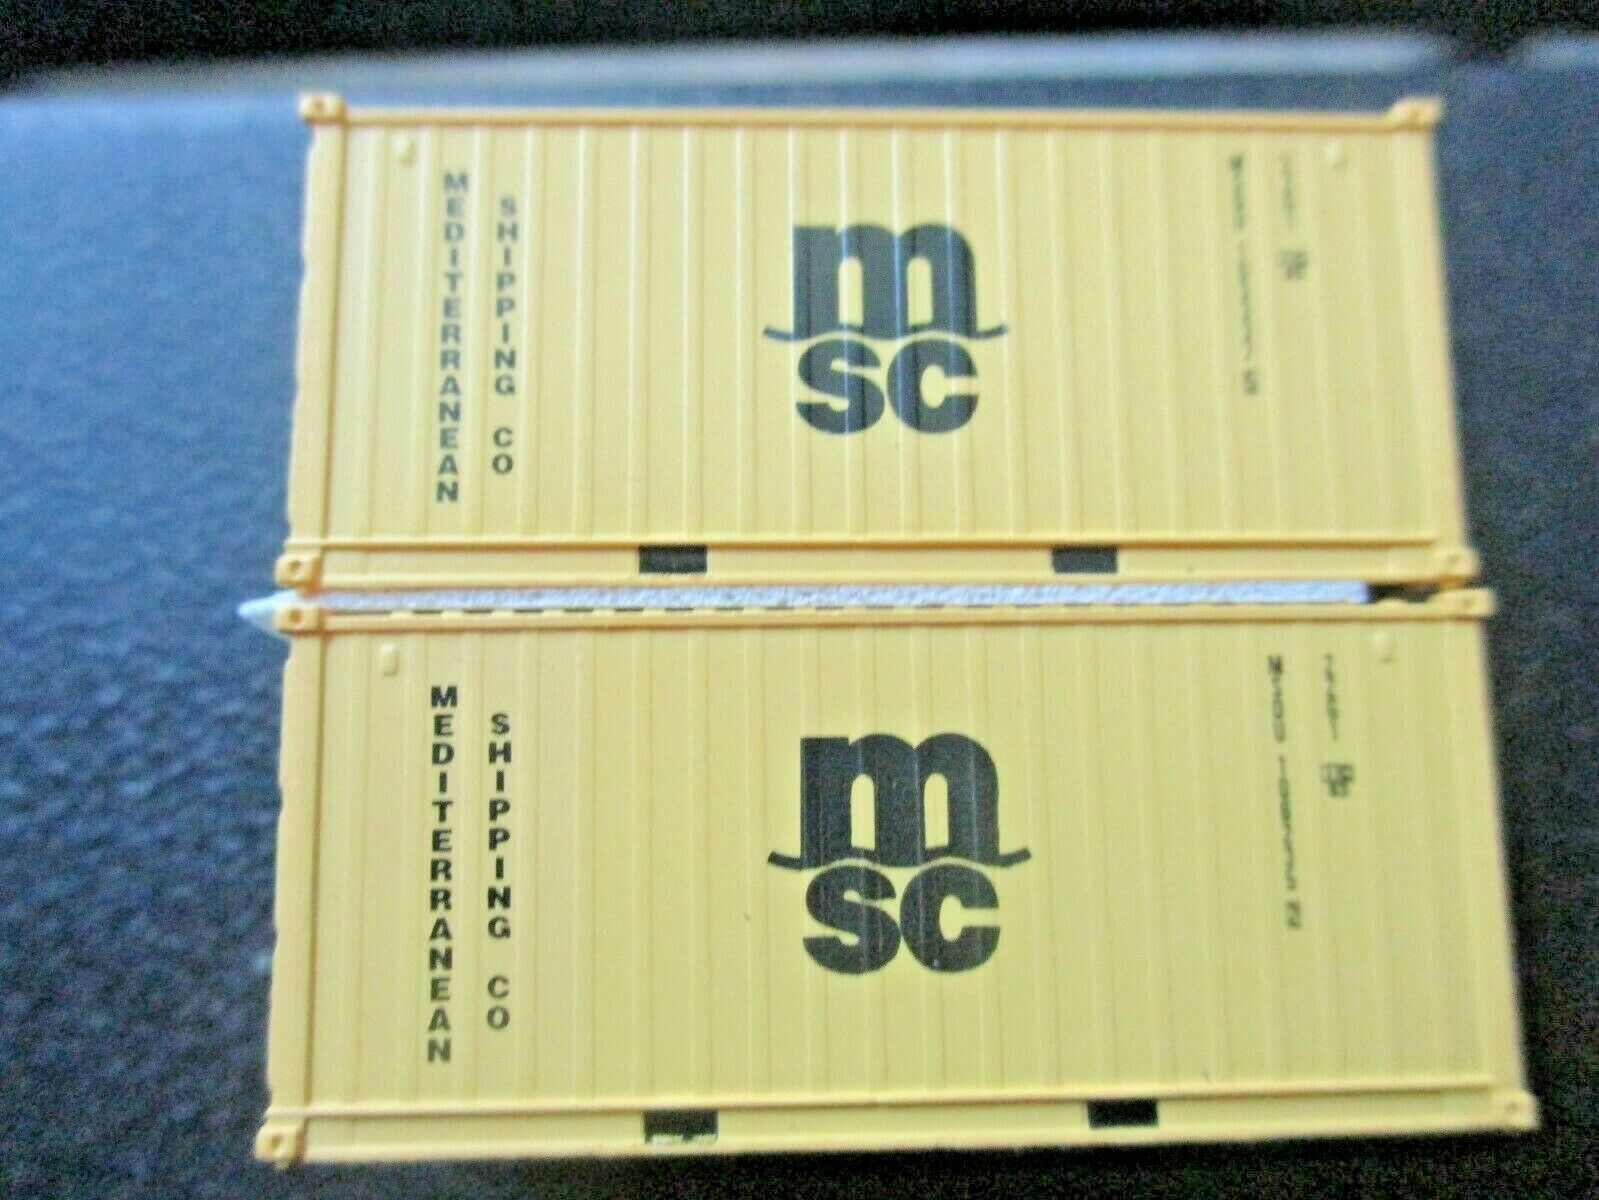 Jacksonville Terminal Company # 205380 MSDU MSC 20' ECO-CONTAINER N-Scale